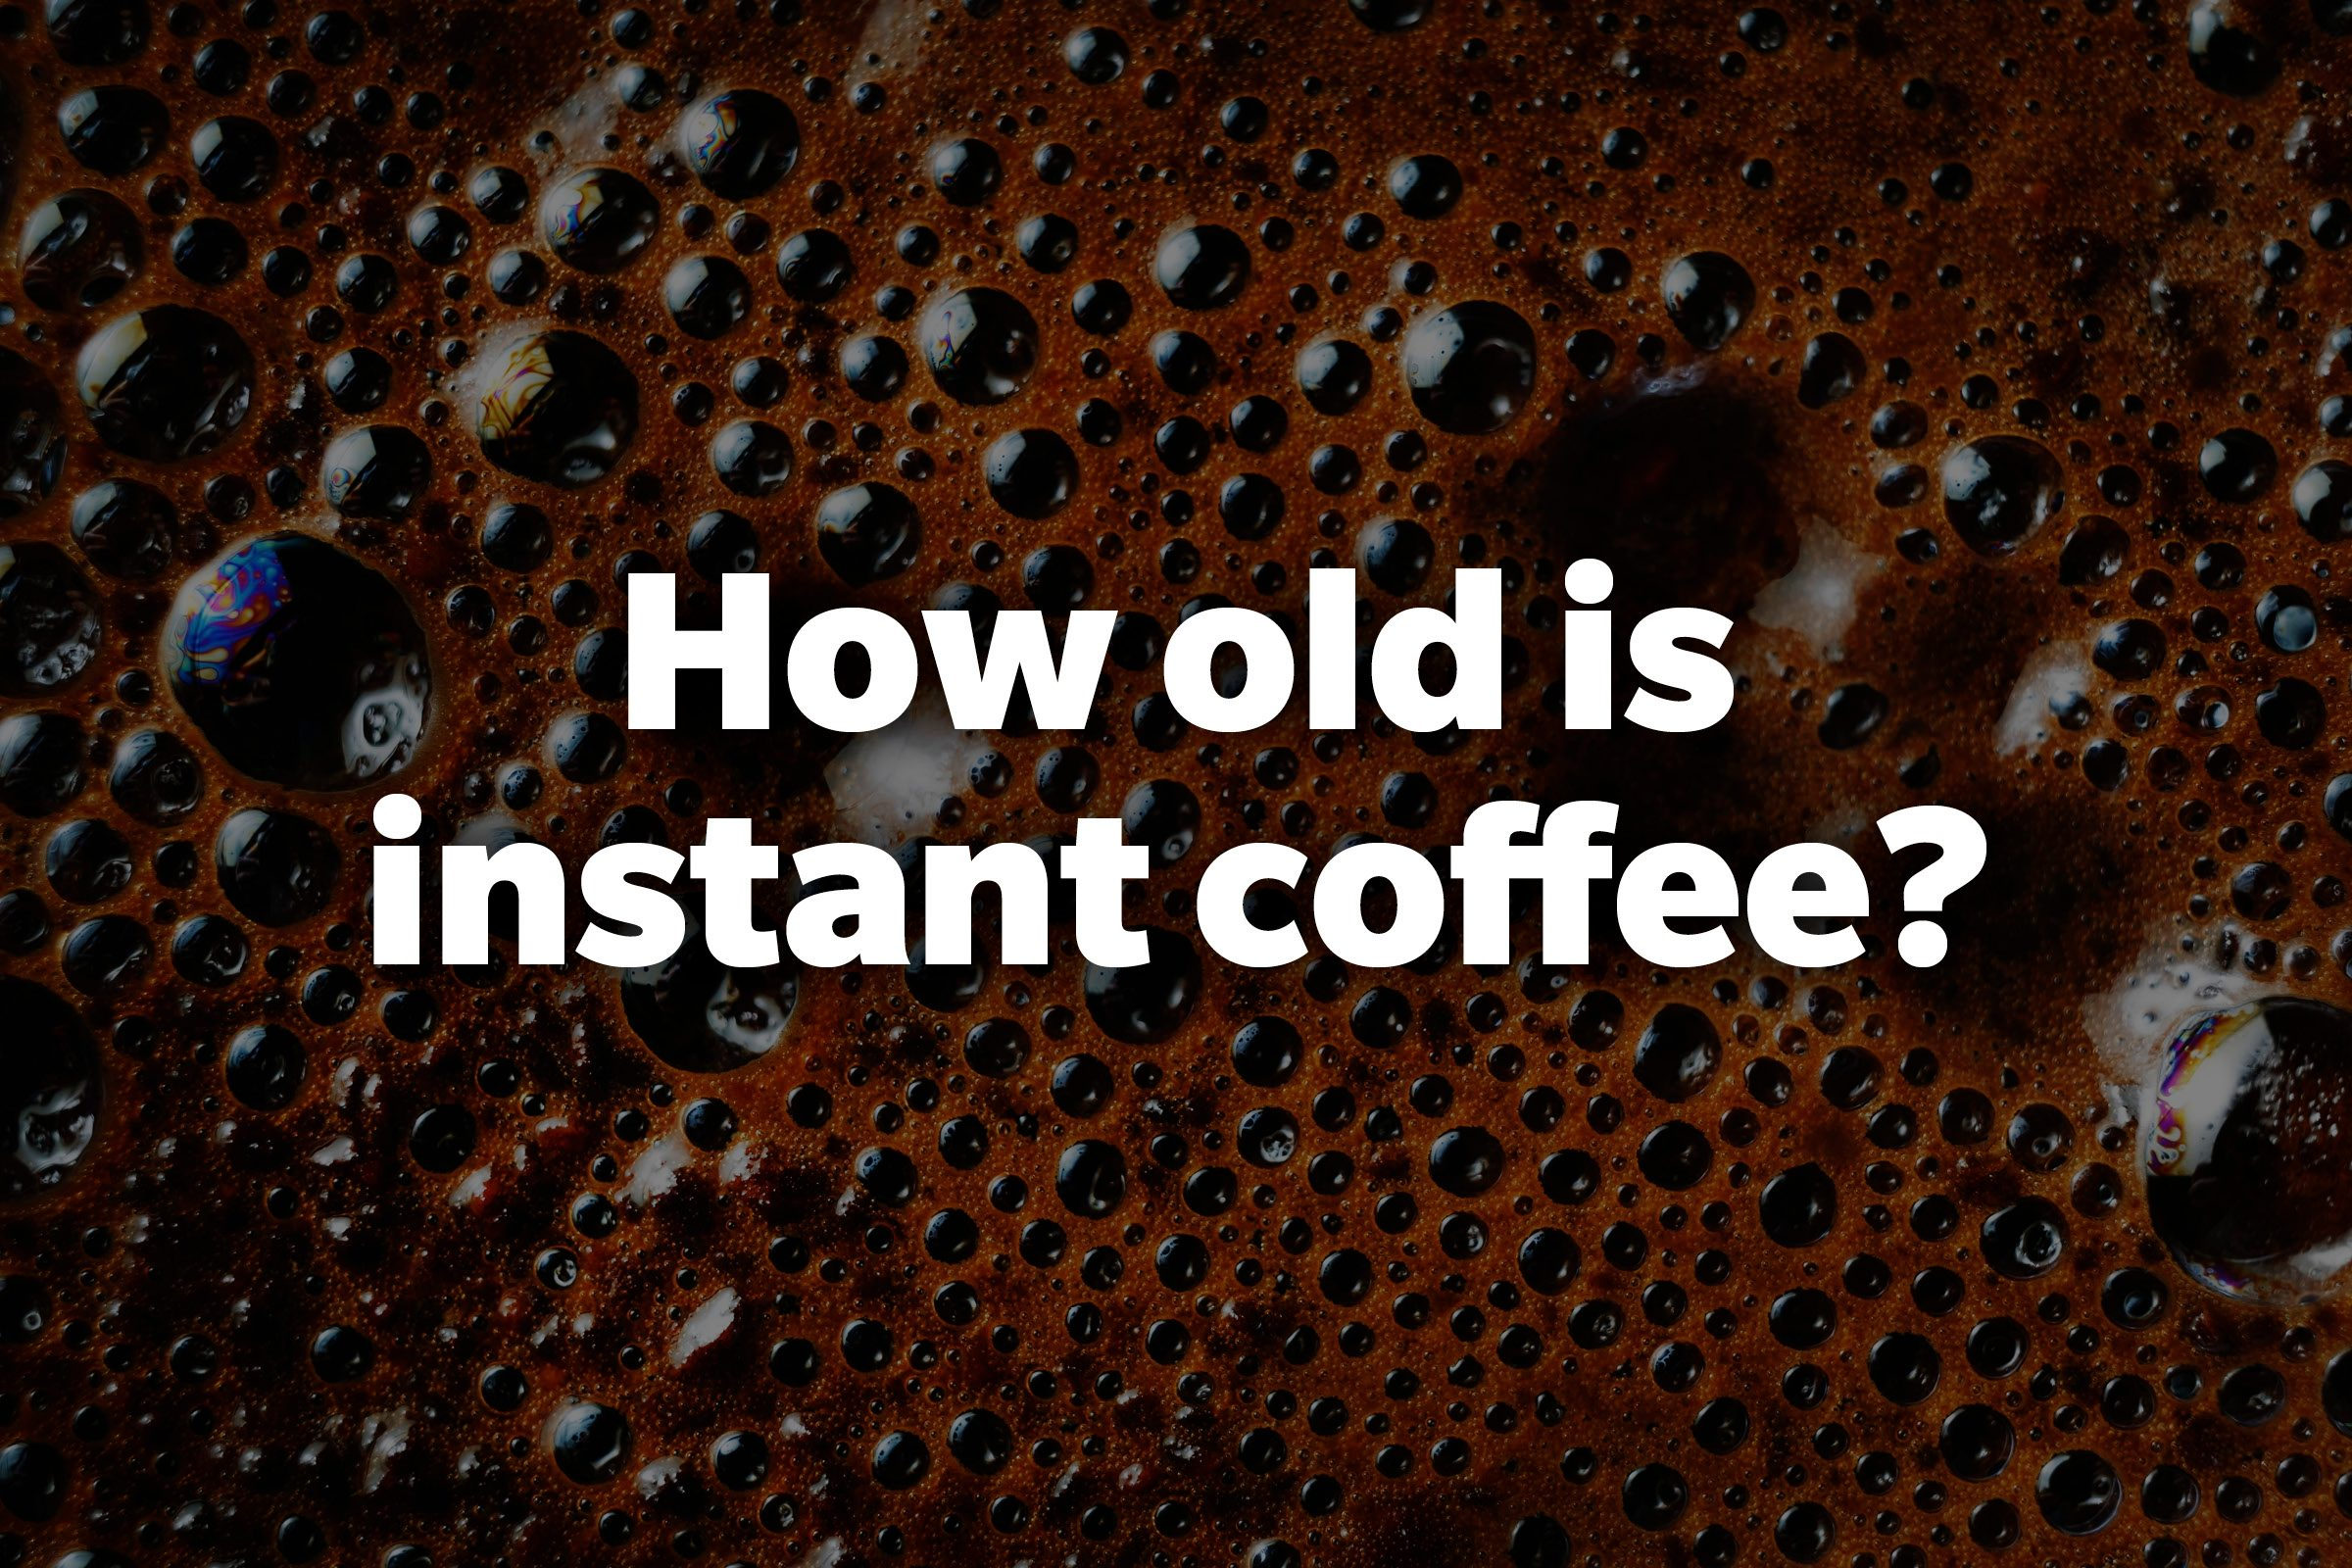 How old is instant coffee?